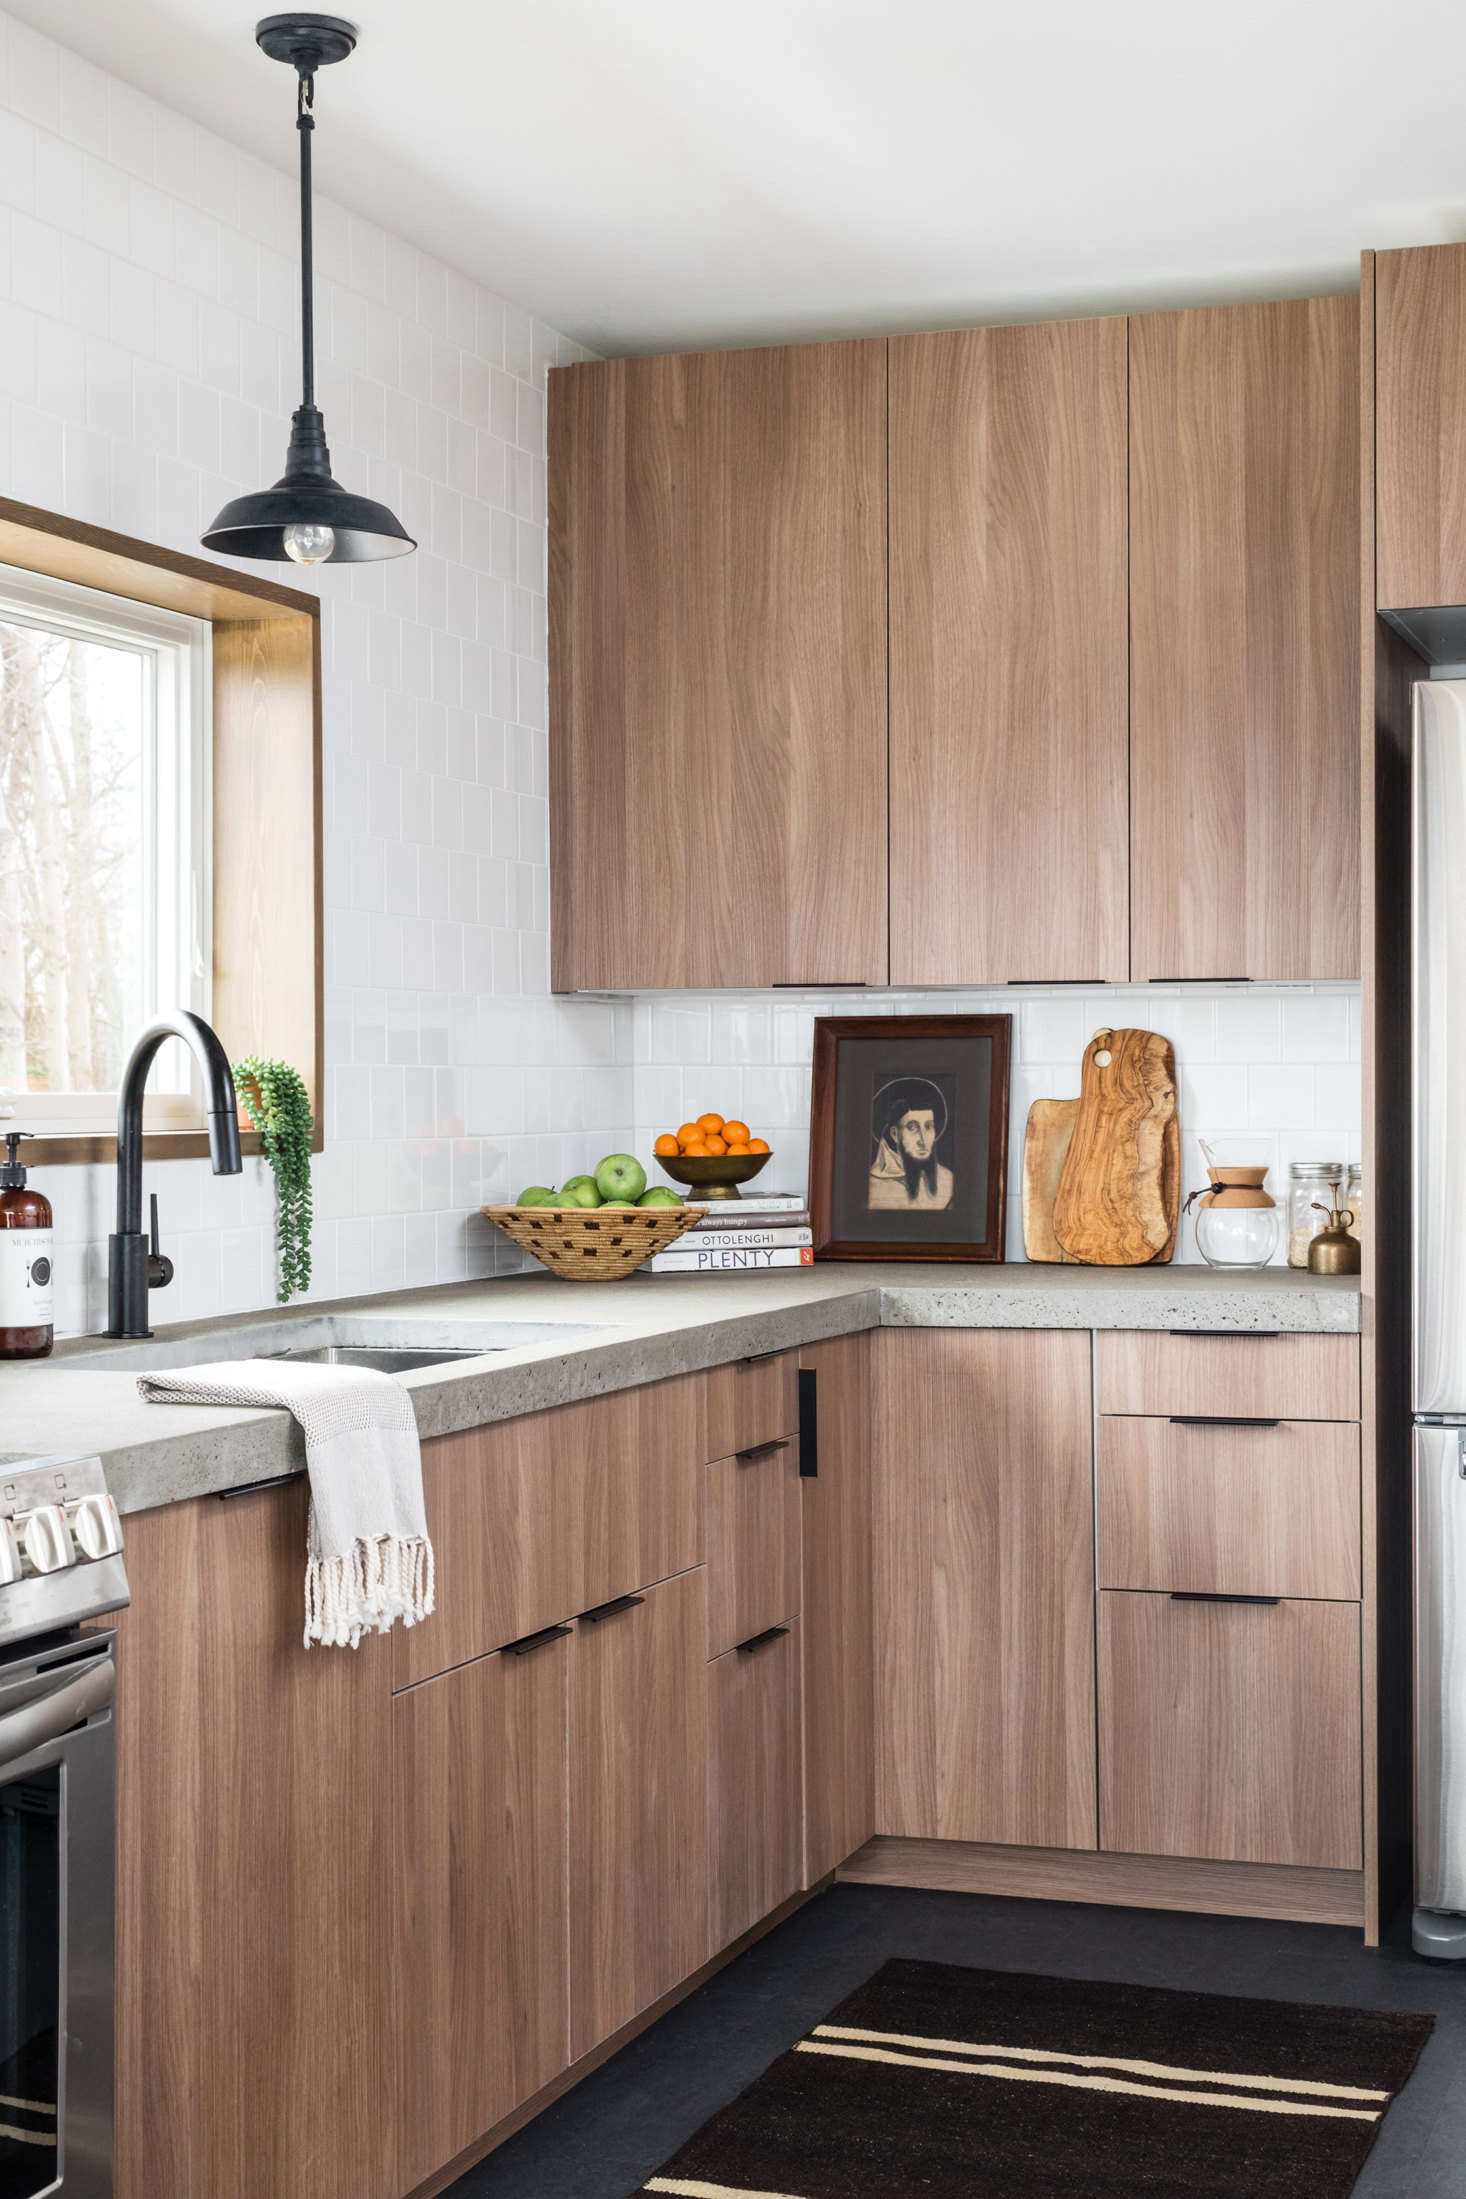 In Praise of Ikea 20 Ikea Kitchens from the Remodelista